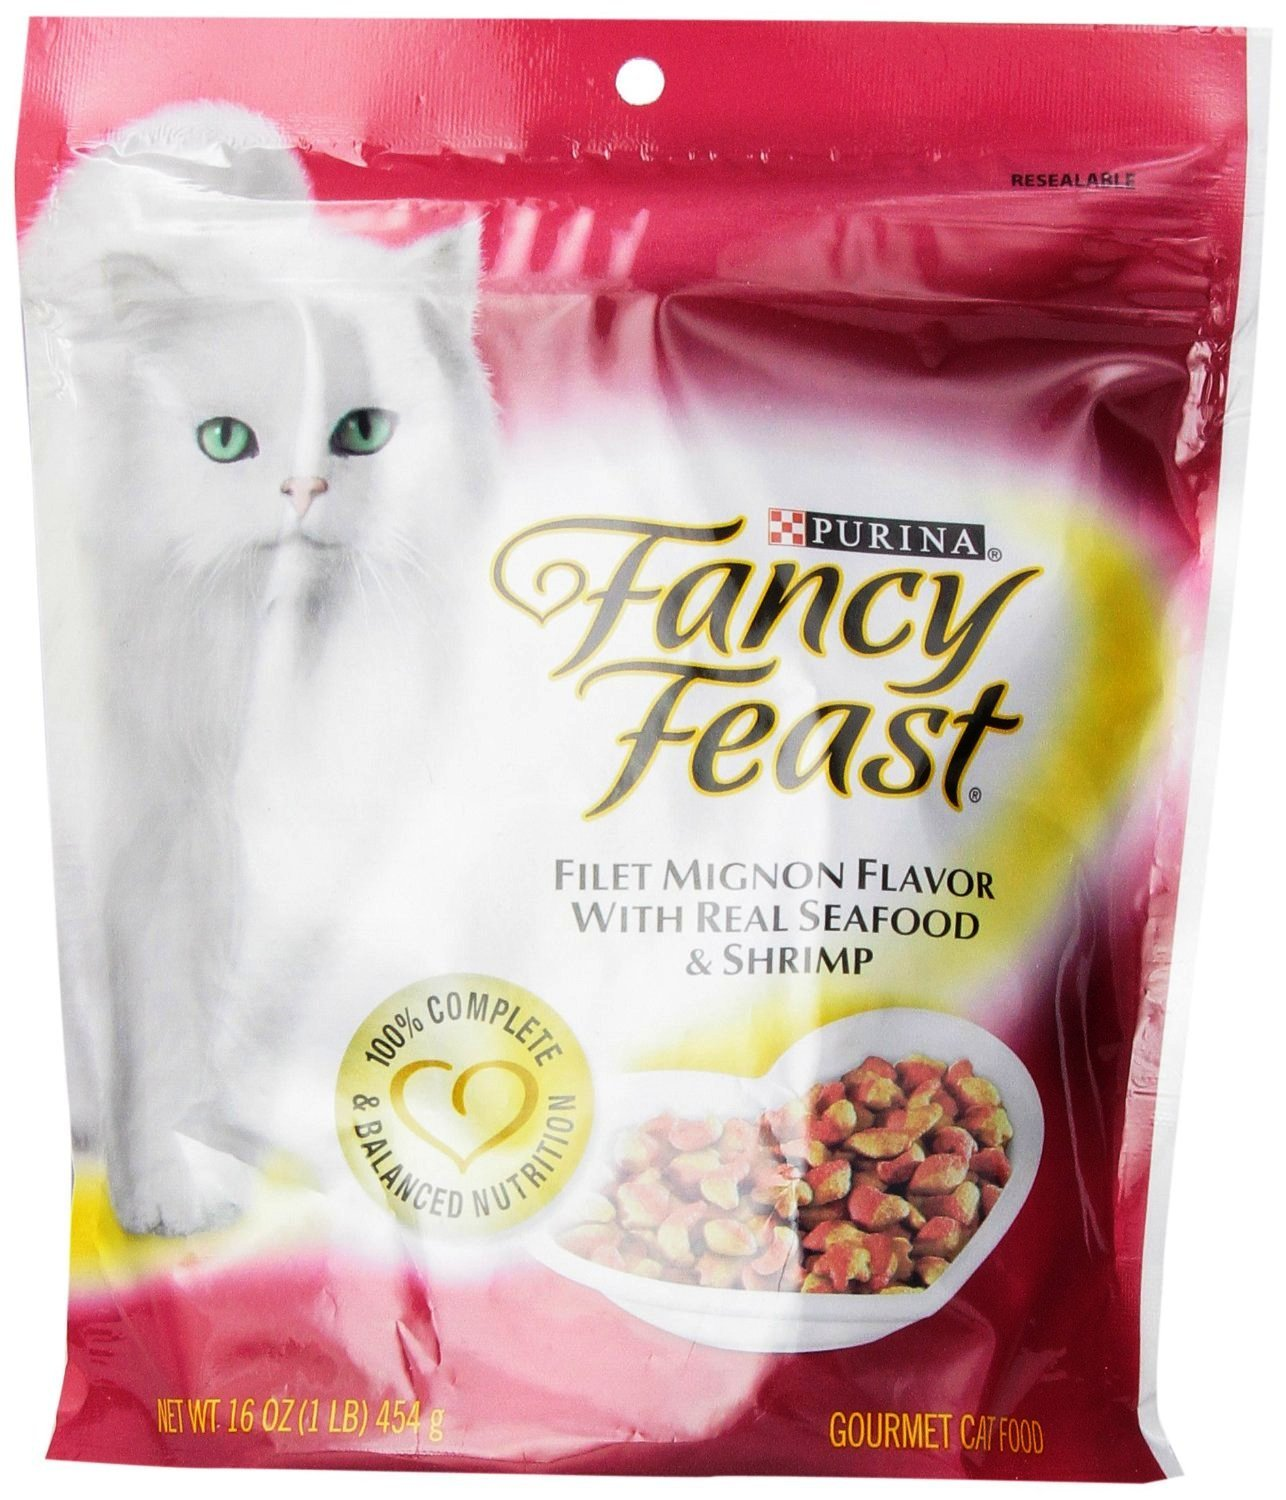 Purina Fancy Feast Gourmet Cat Food, Filet Mignon Flavor with Real Seafood & Shrimp, 16 oz. Pack of 2